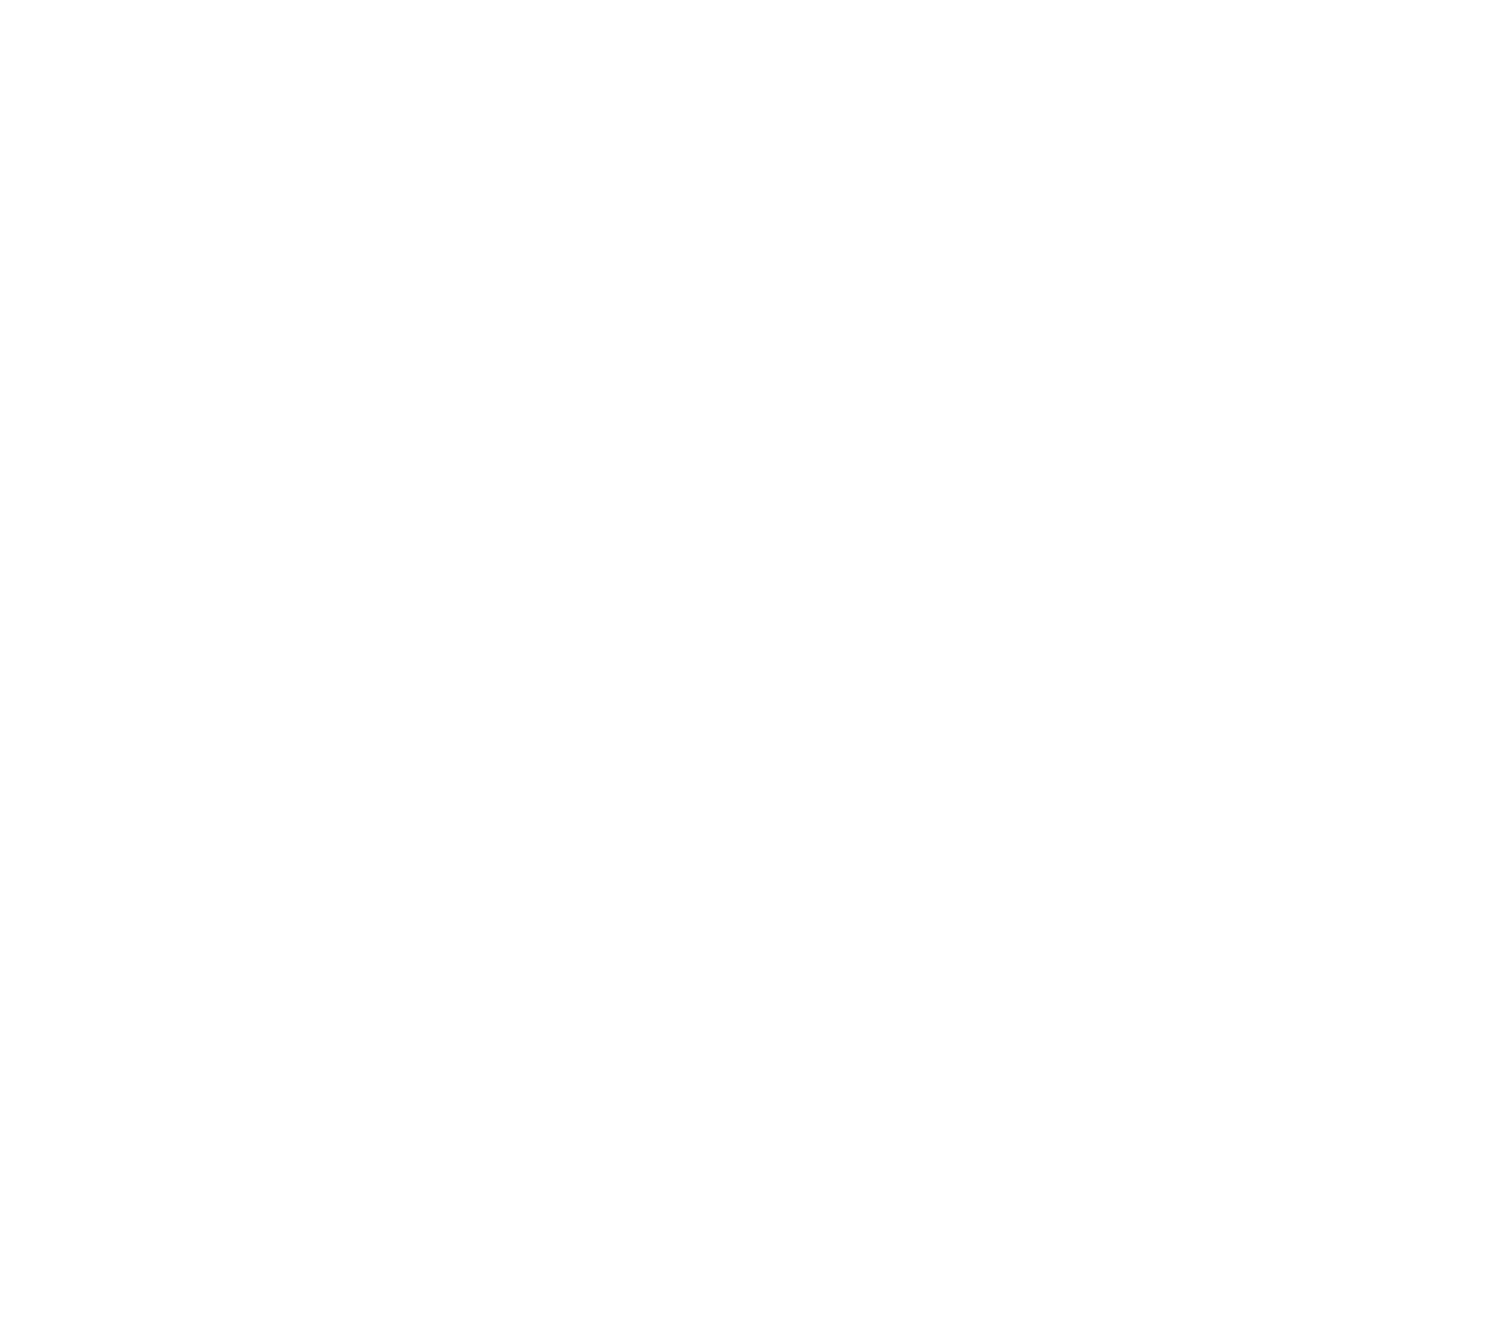 The 7th Artistry